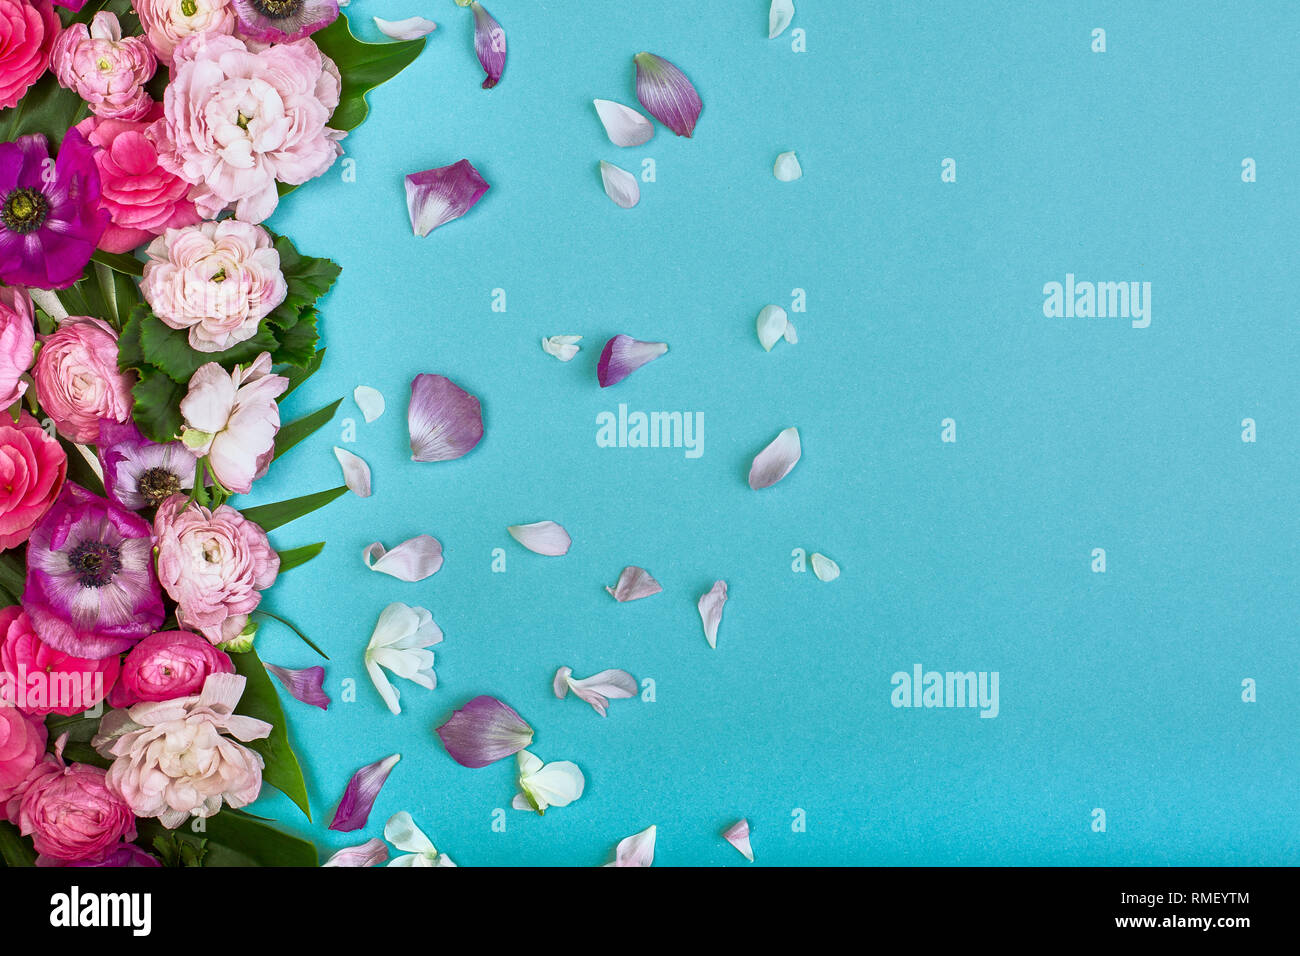 Beautiful Floral Background Texture Wallpaper Flat Lay Of Pink